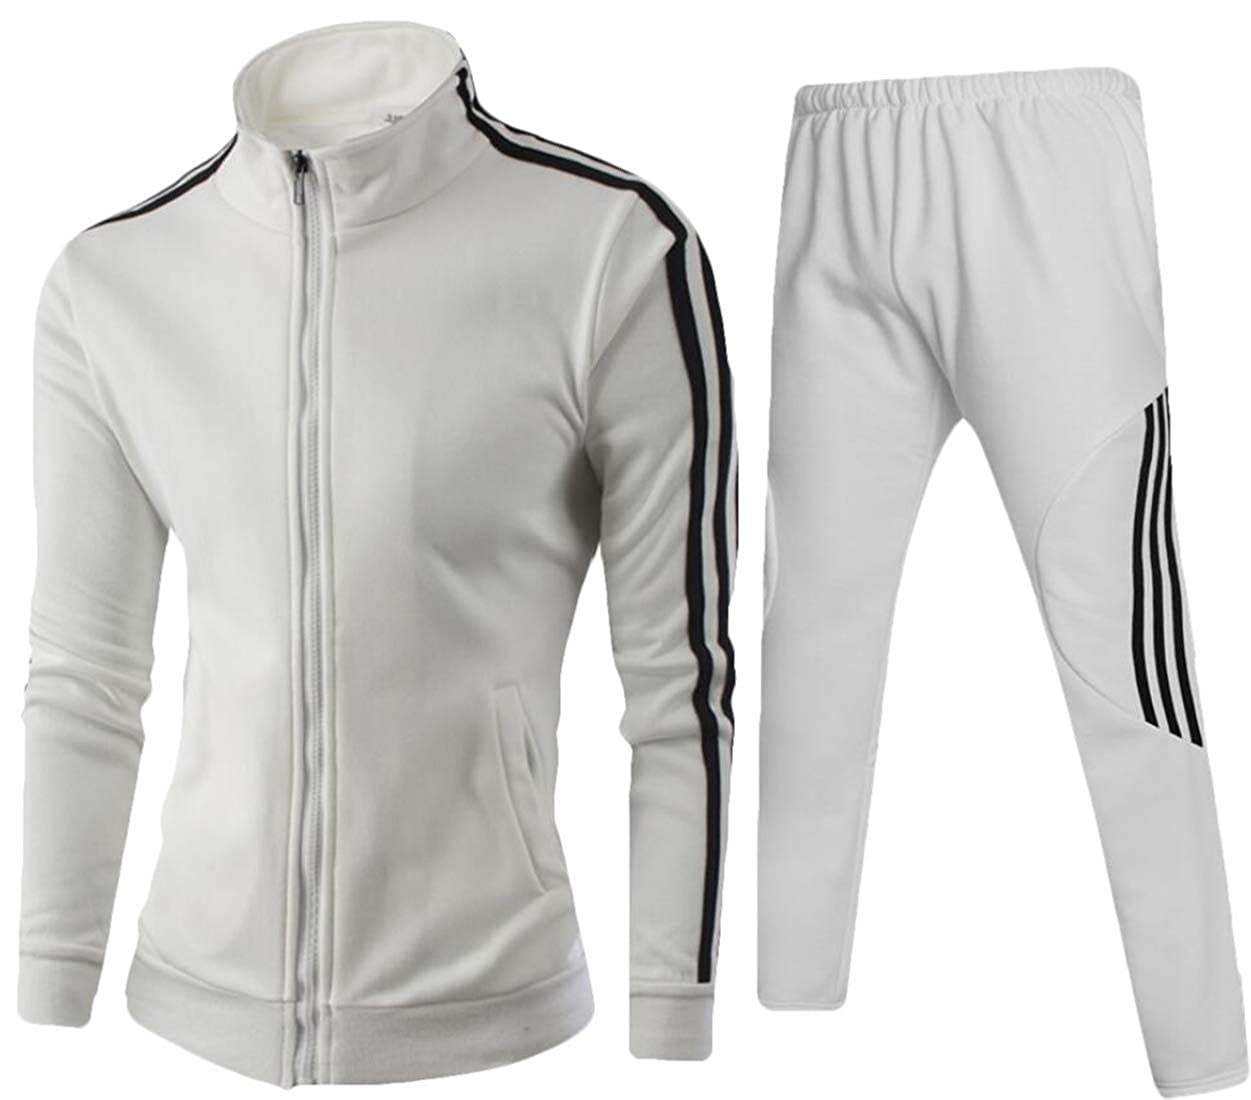 Fubotevic Men Zipper Striped Jacket 2 Pieces Sport Pants Tracksuit Outfit Set